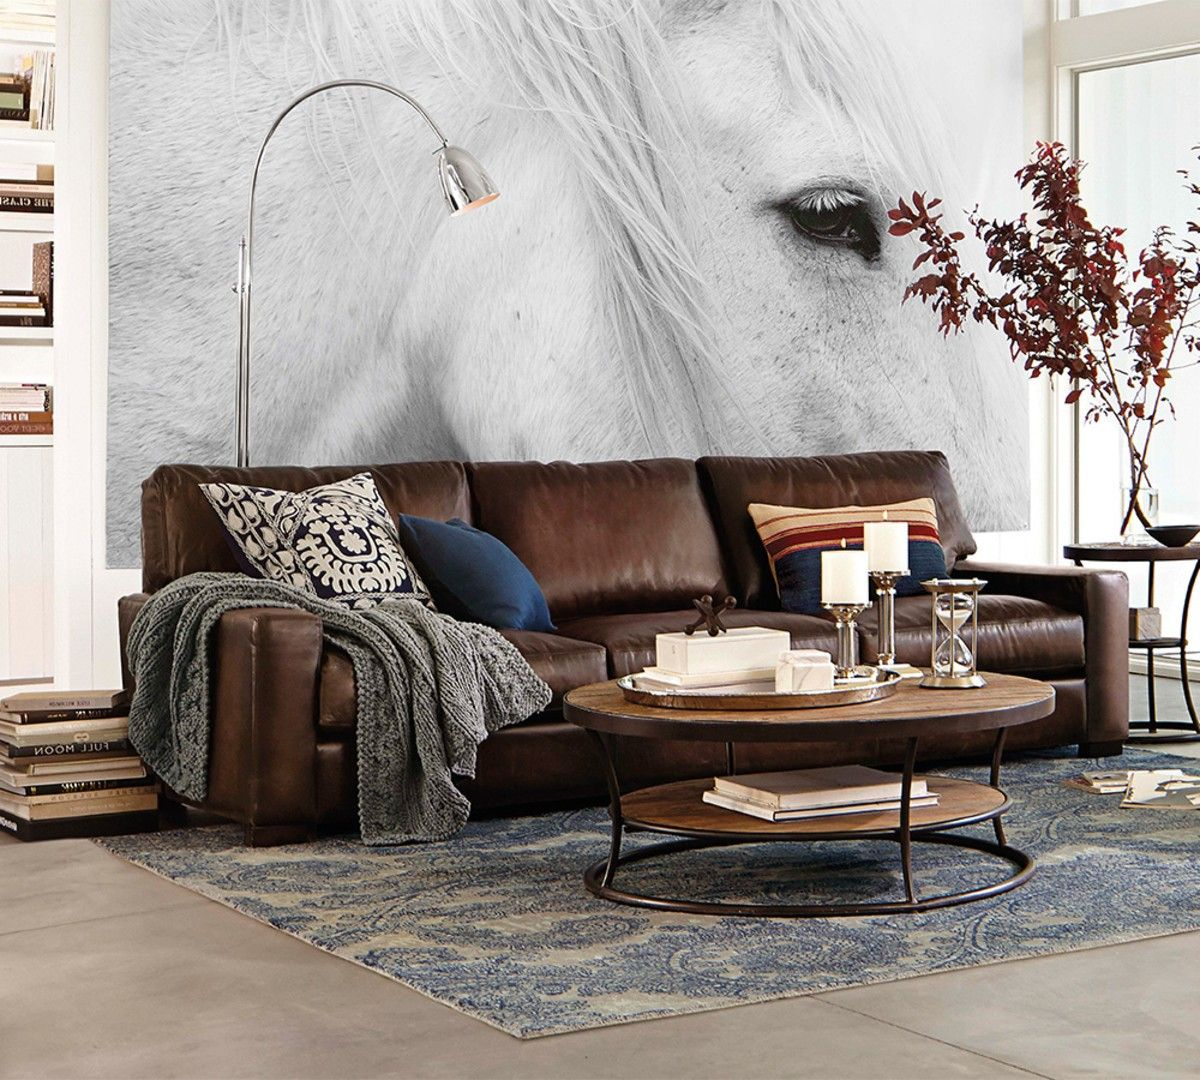 Beau Genuine Leather Sectional | Couch And Loveseat Sets | Full Grain Leather  Sectional Family Dining Rooms